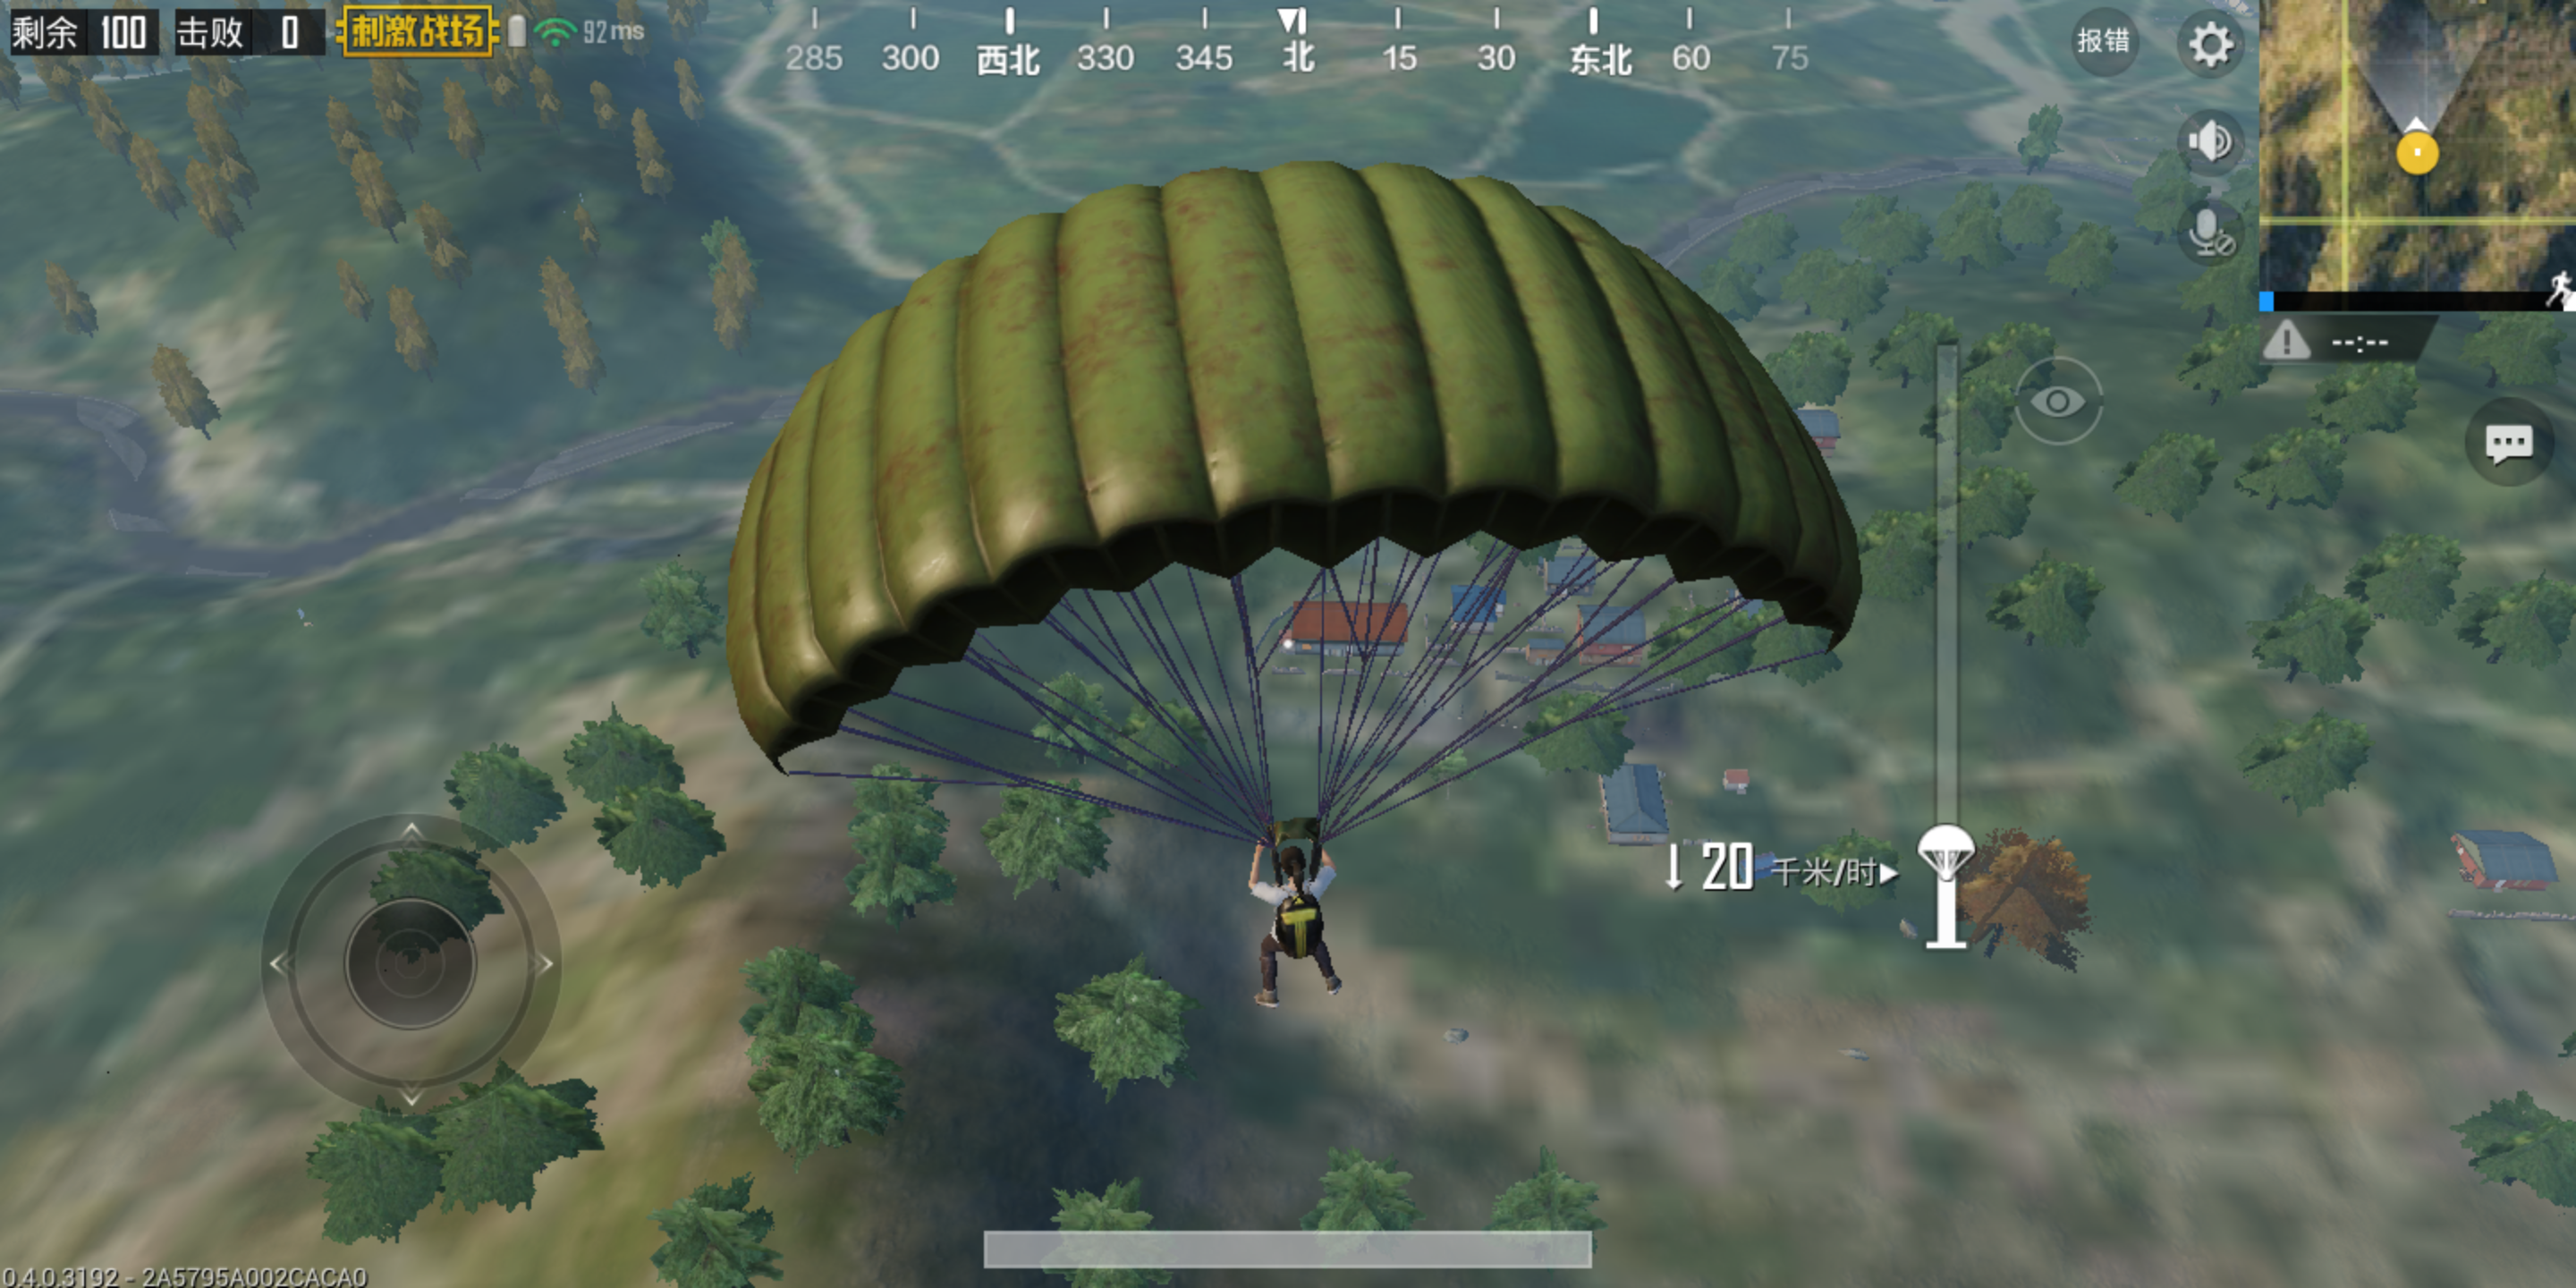 Pubg Wallpaper Trool: PUBG On Your Phone Is Better Than You'd Expect